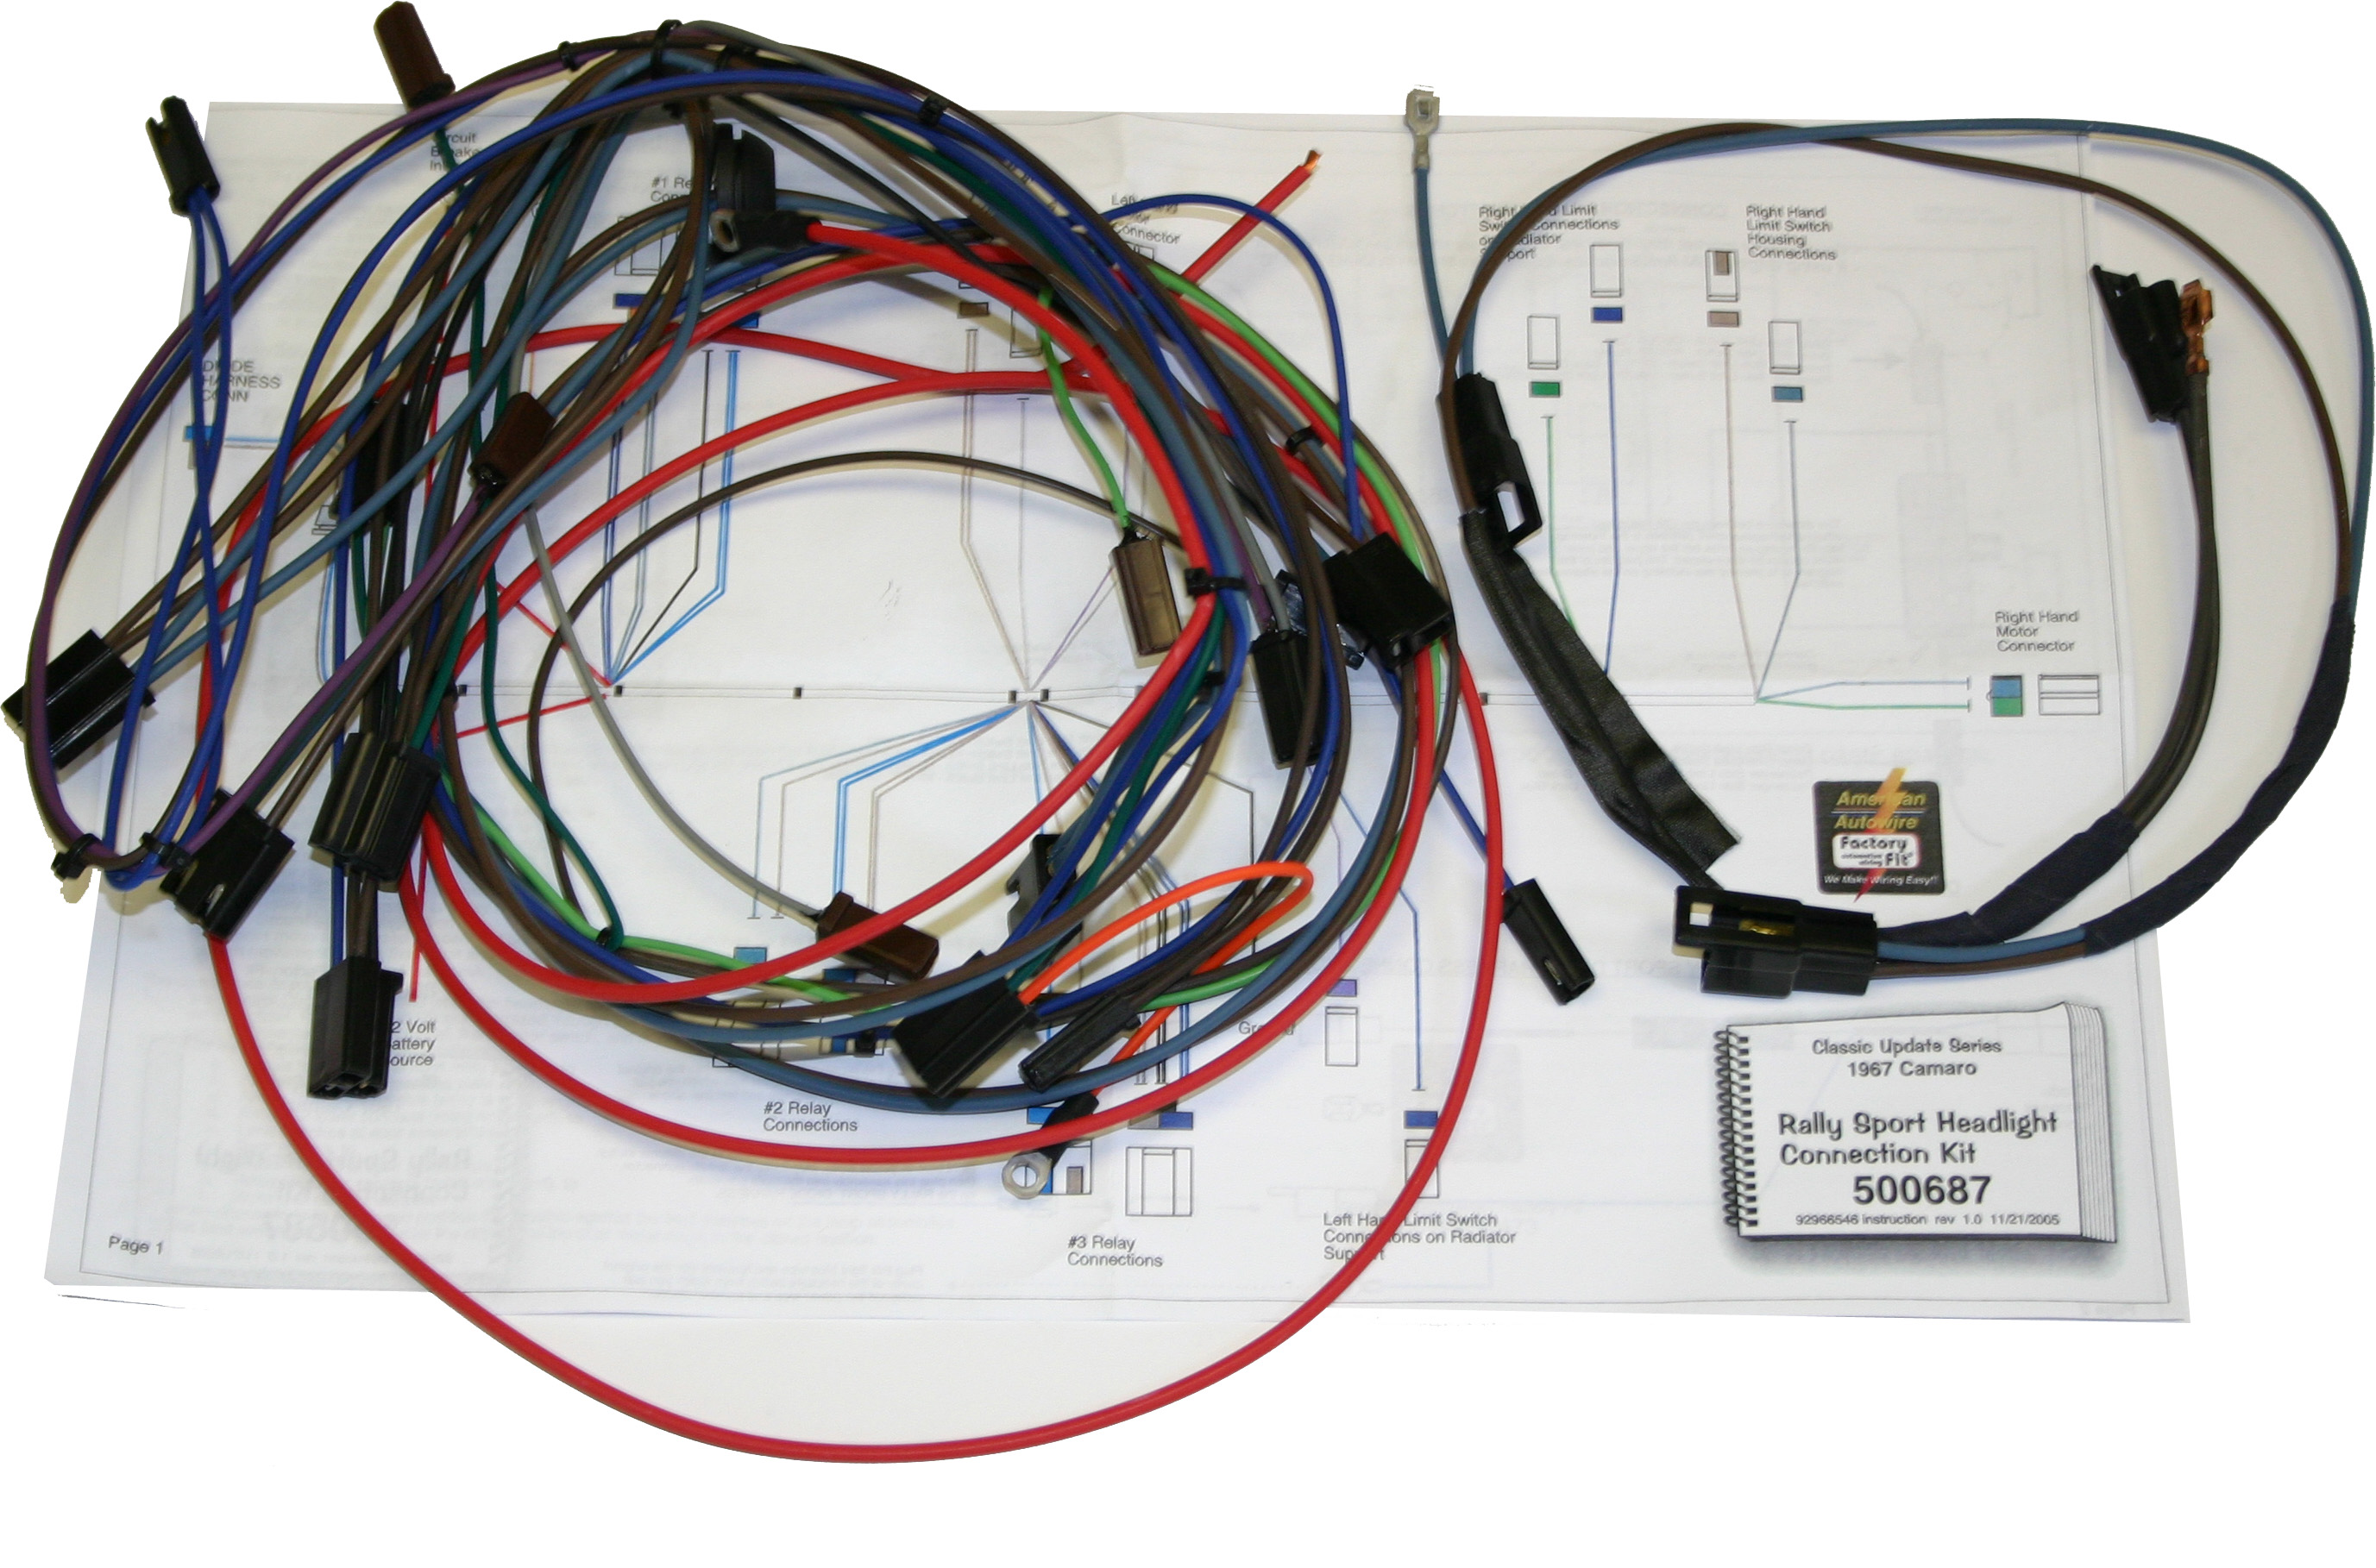 67 camaro wiring harness detailed schematics diagram 1970 chevelle wire harness diagram 67 68 camaro classic update wiring harness 500661 67 cougar wiring harness 67 camaro wiring harness